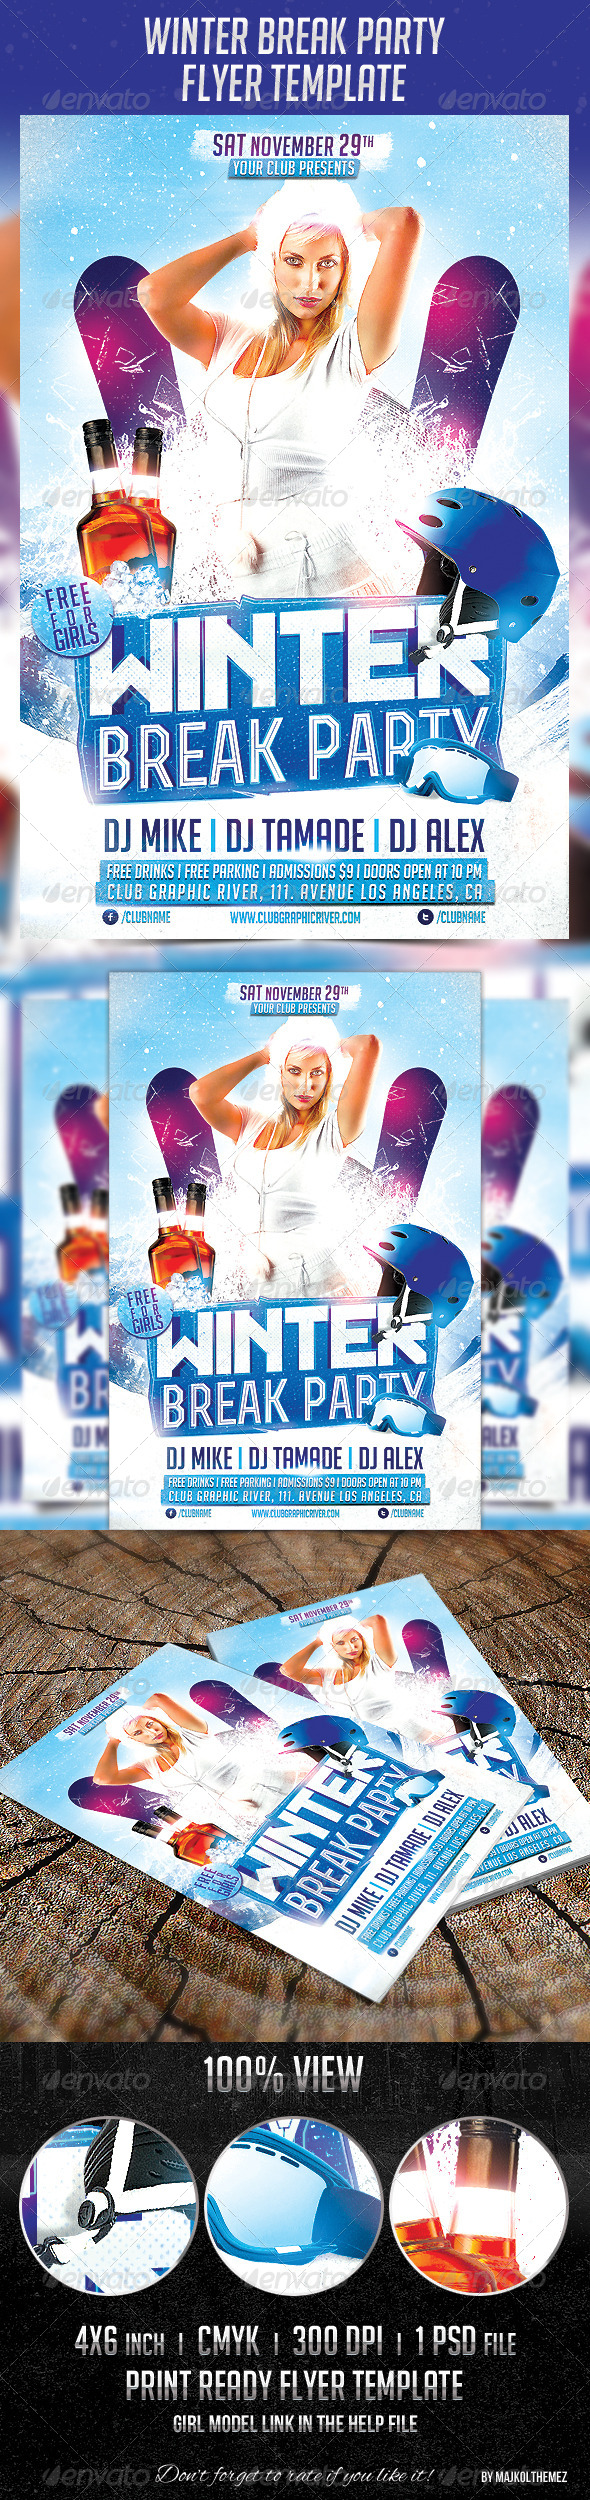 GraphicRiver Winter Break Party Flyer Template 5962426